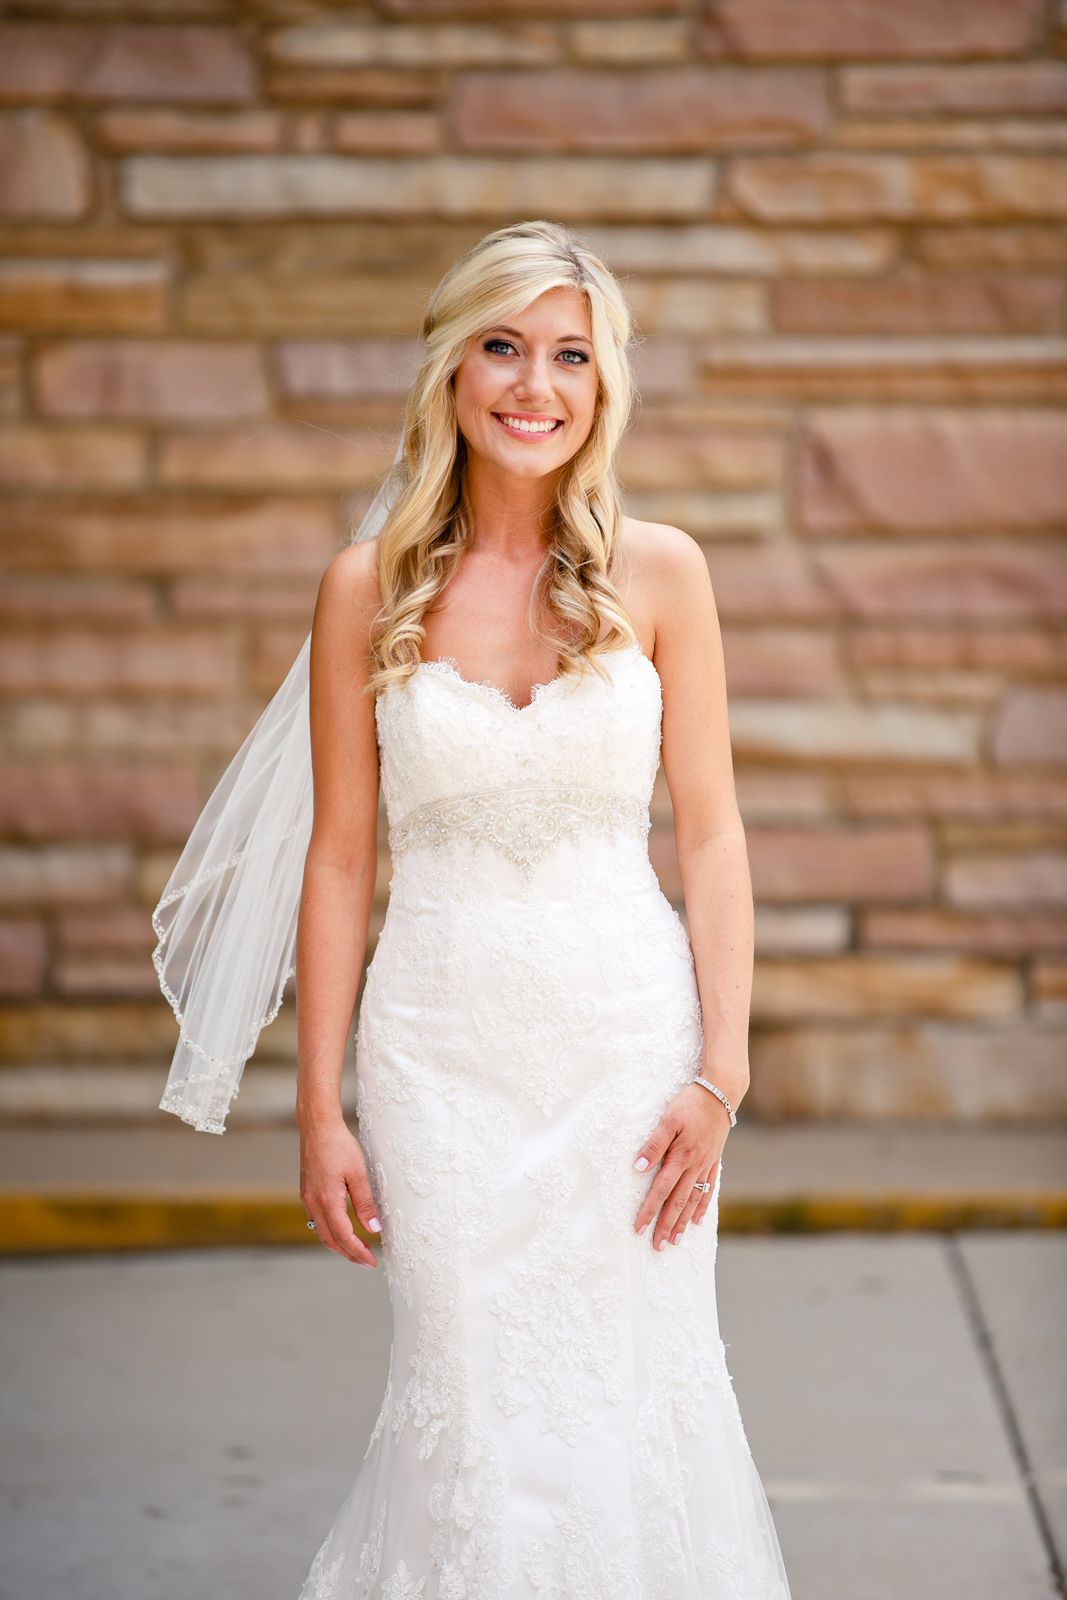 Millstadt Bride Wedding Photos at St. Paul United Church of Christ with St. Louis Wedding Photographers by Oldani Photography 9.jpg